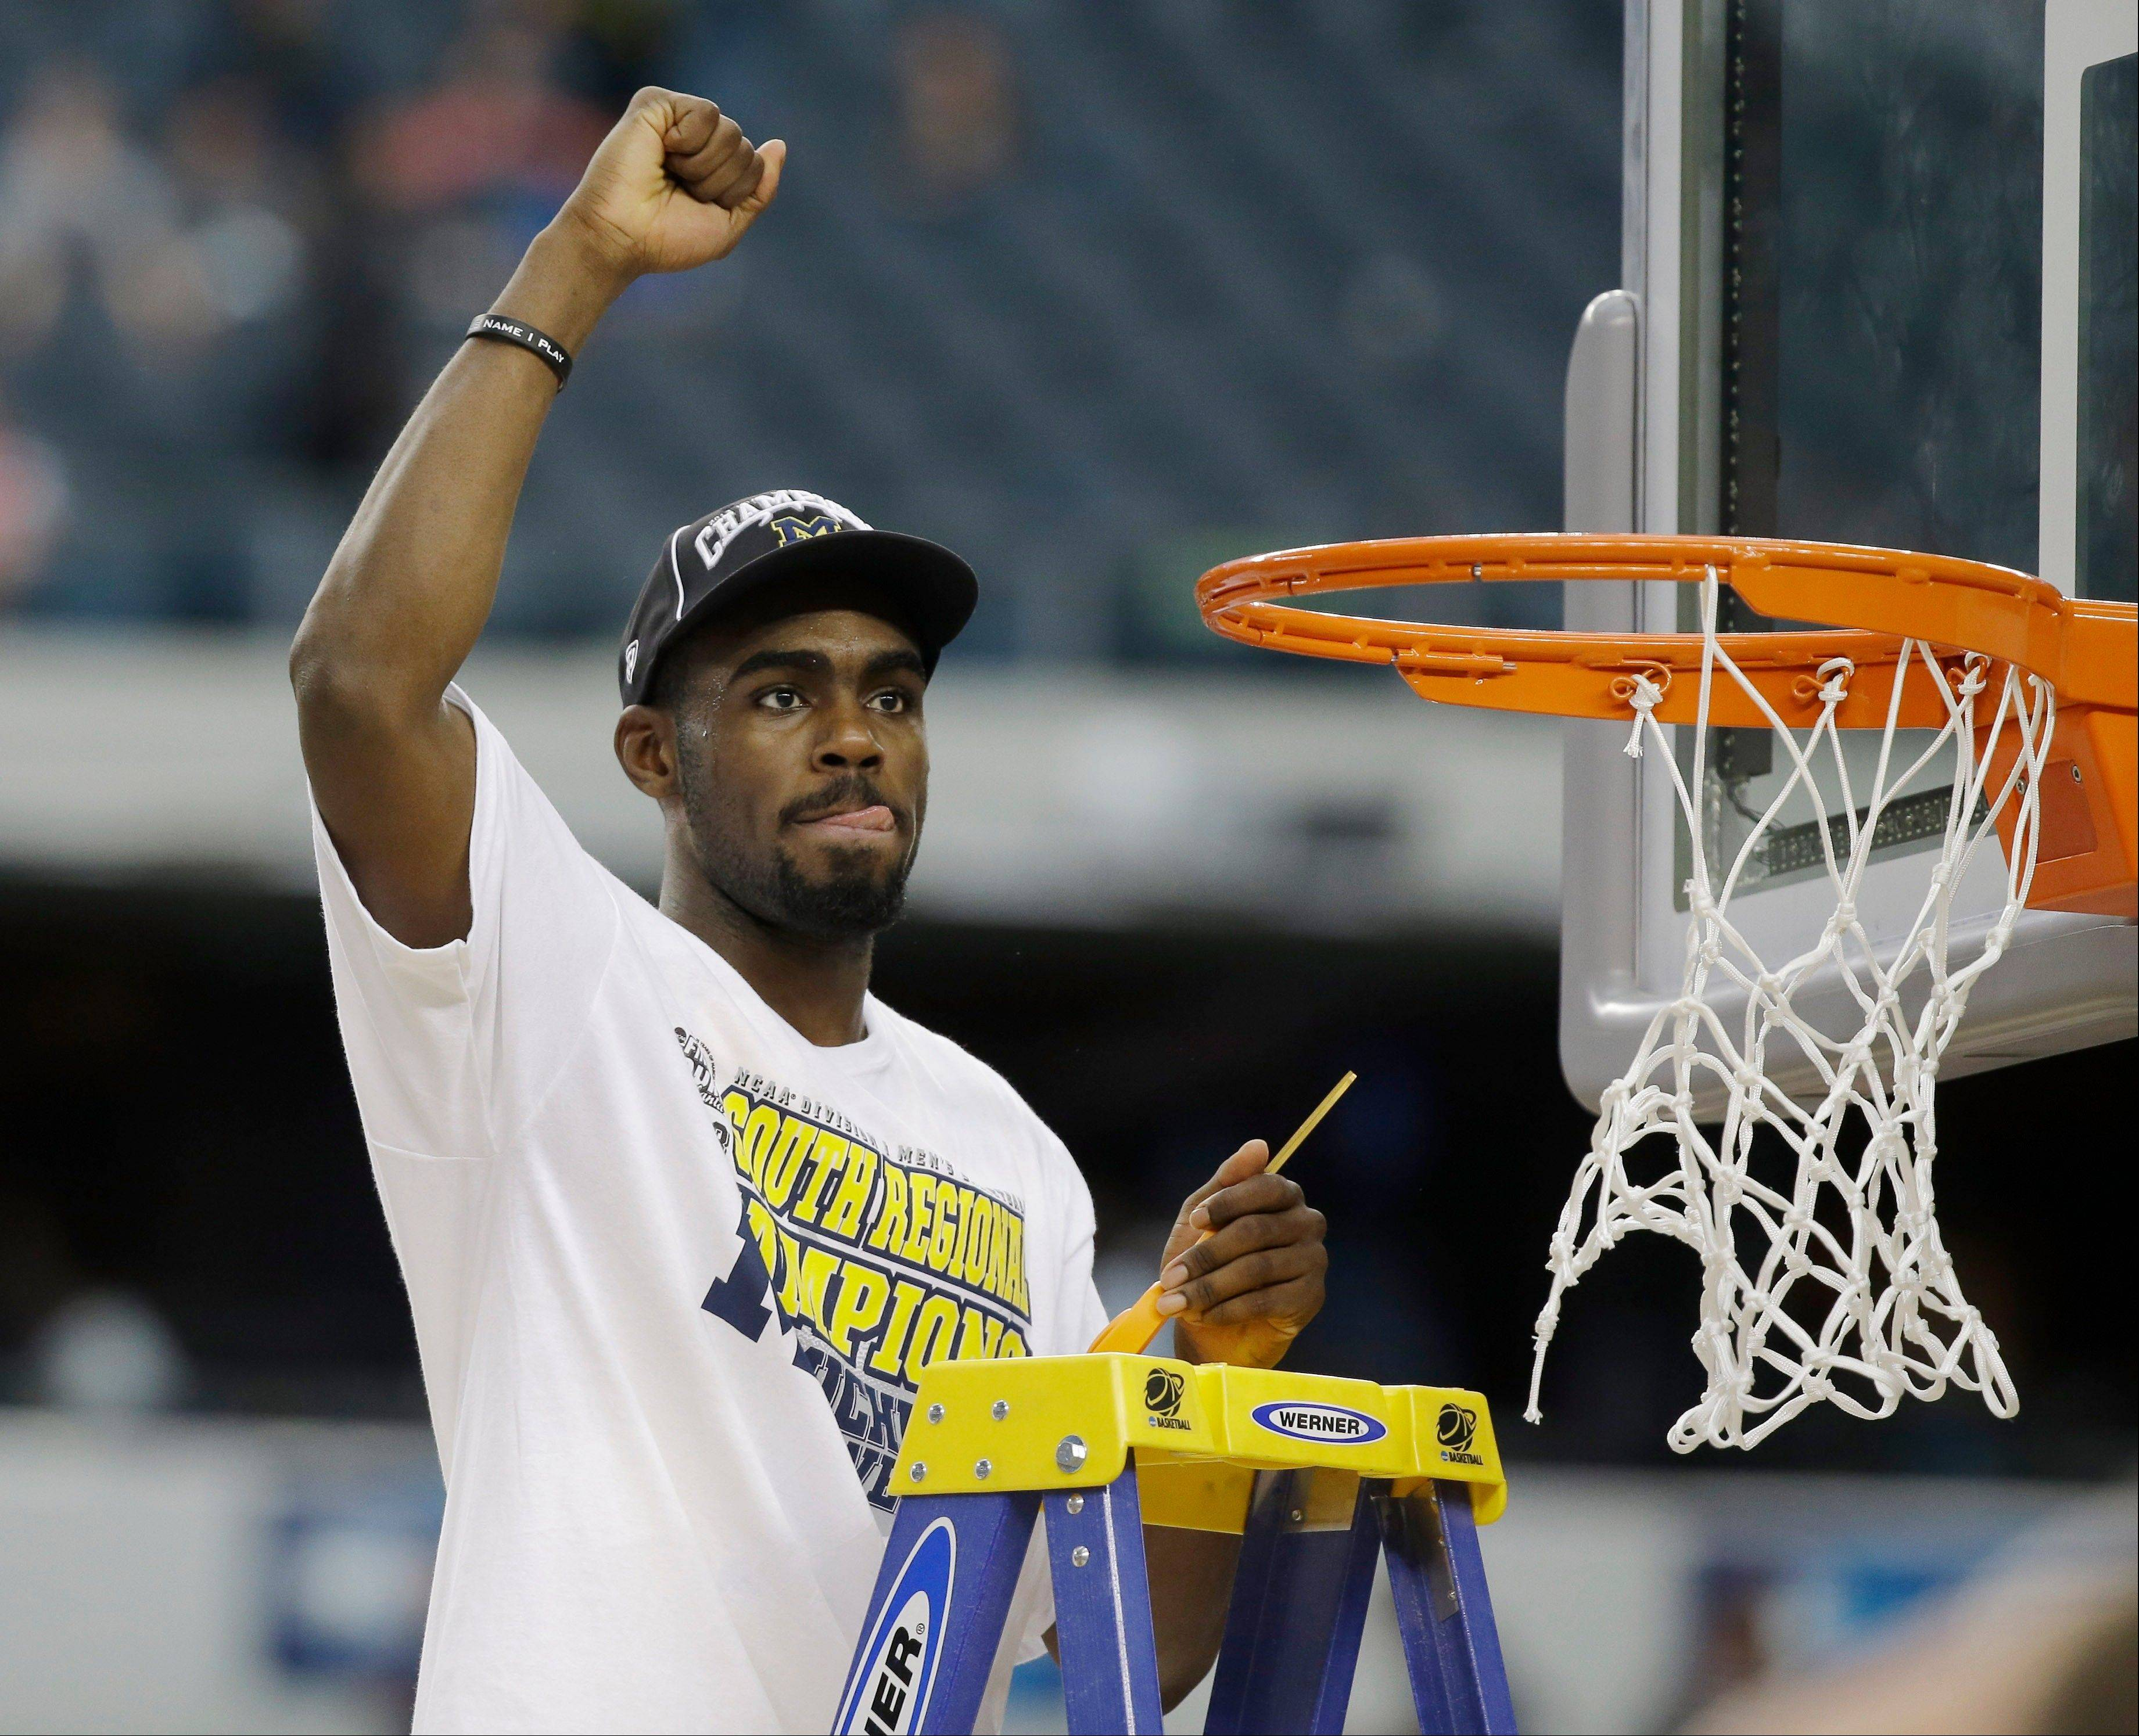 Mike North believes Michigan's Tim Hardaway Jr. will have a chance to cut down the nets and celebrate an NCAA National Championship on Monday night.